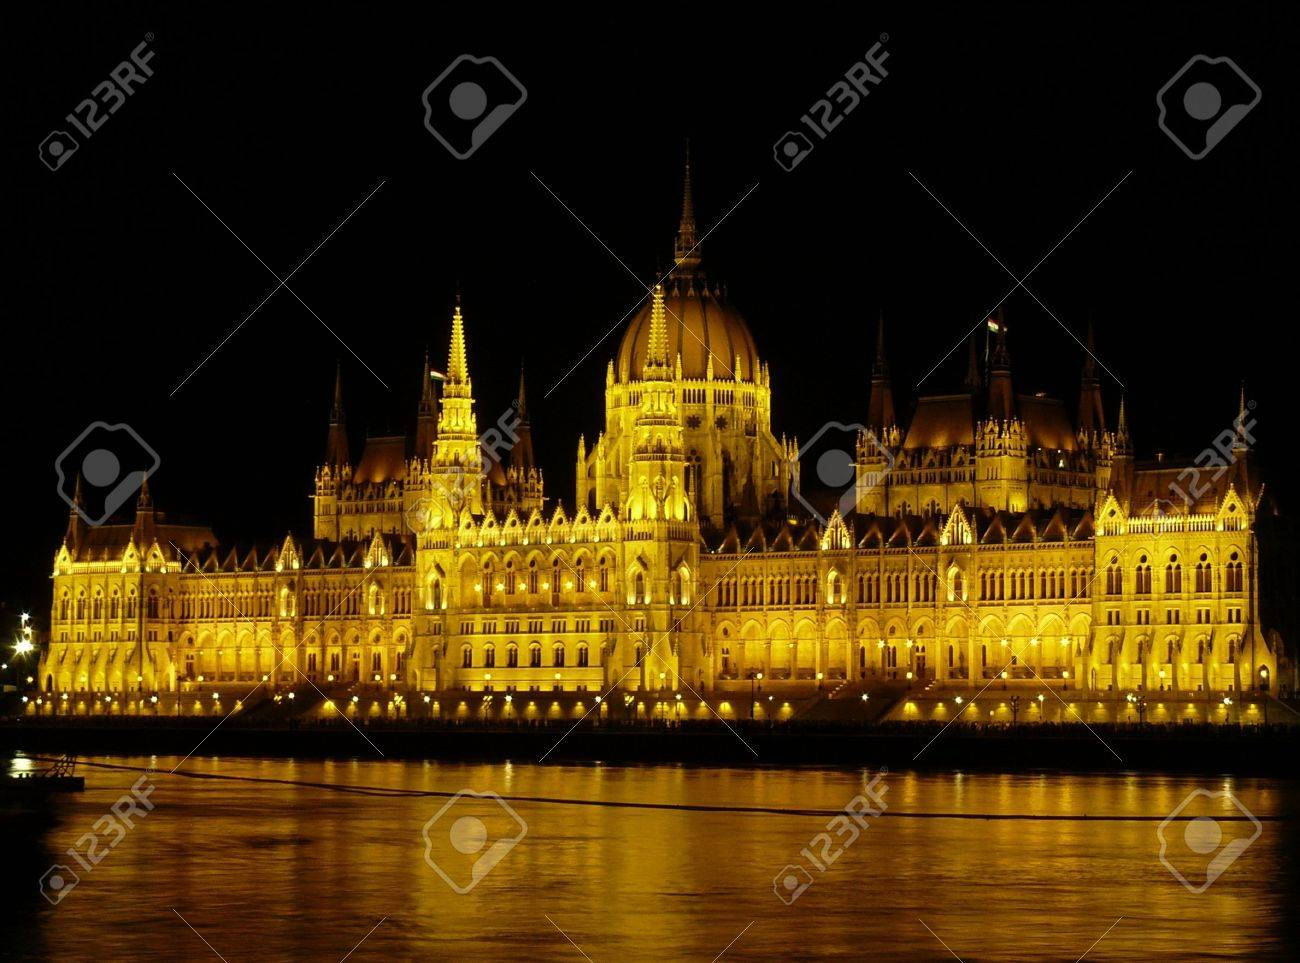 The building of Hungarian Parliament, Budapest, Hungary Stock Photo - 10355969